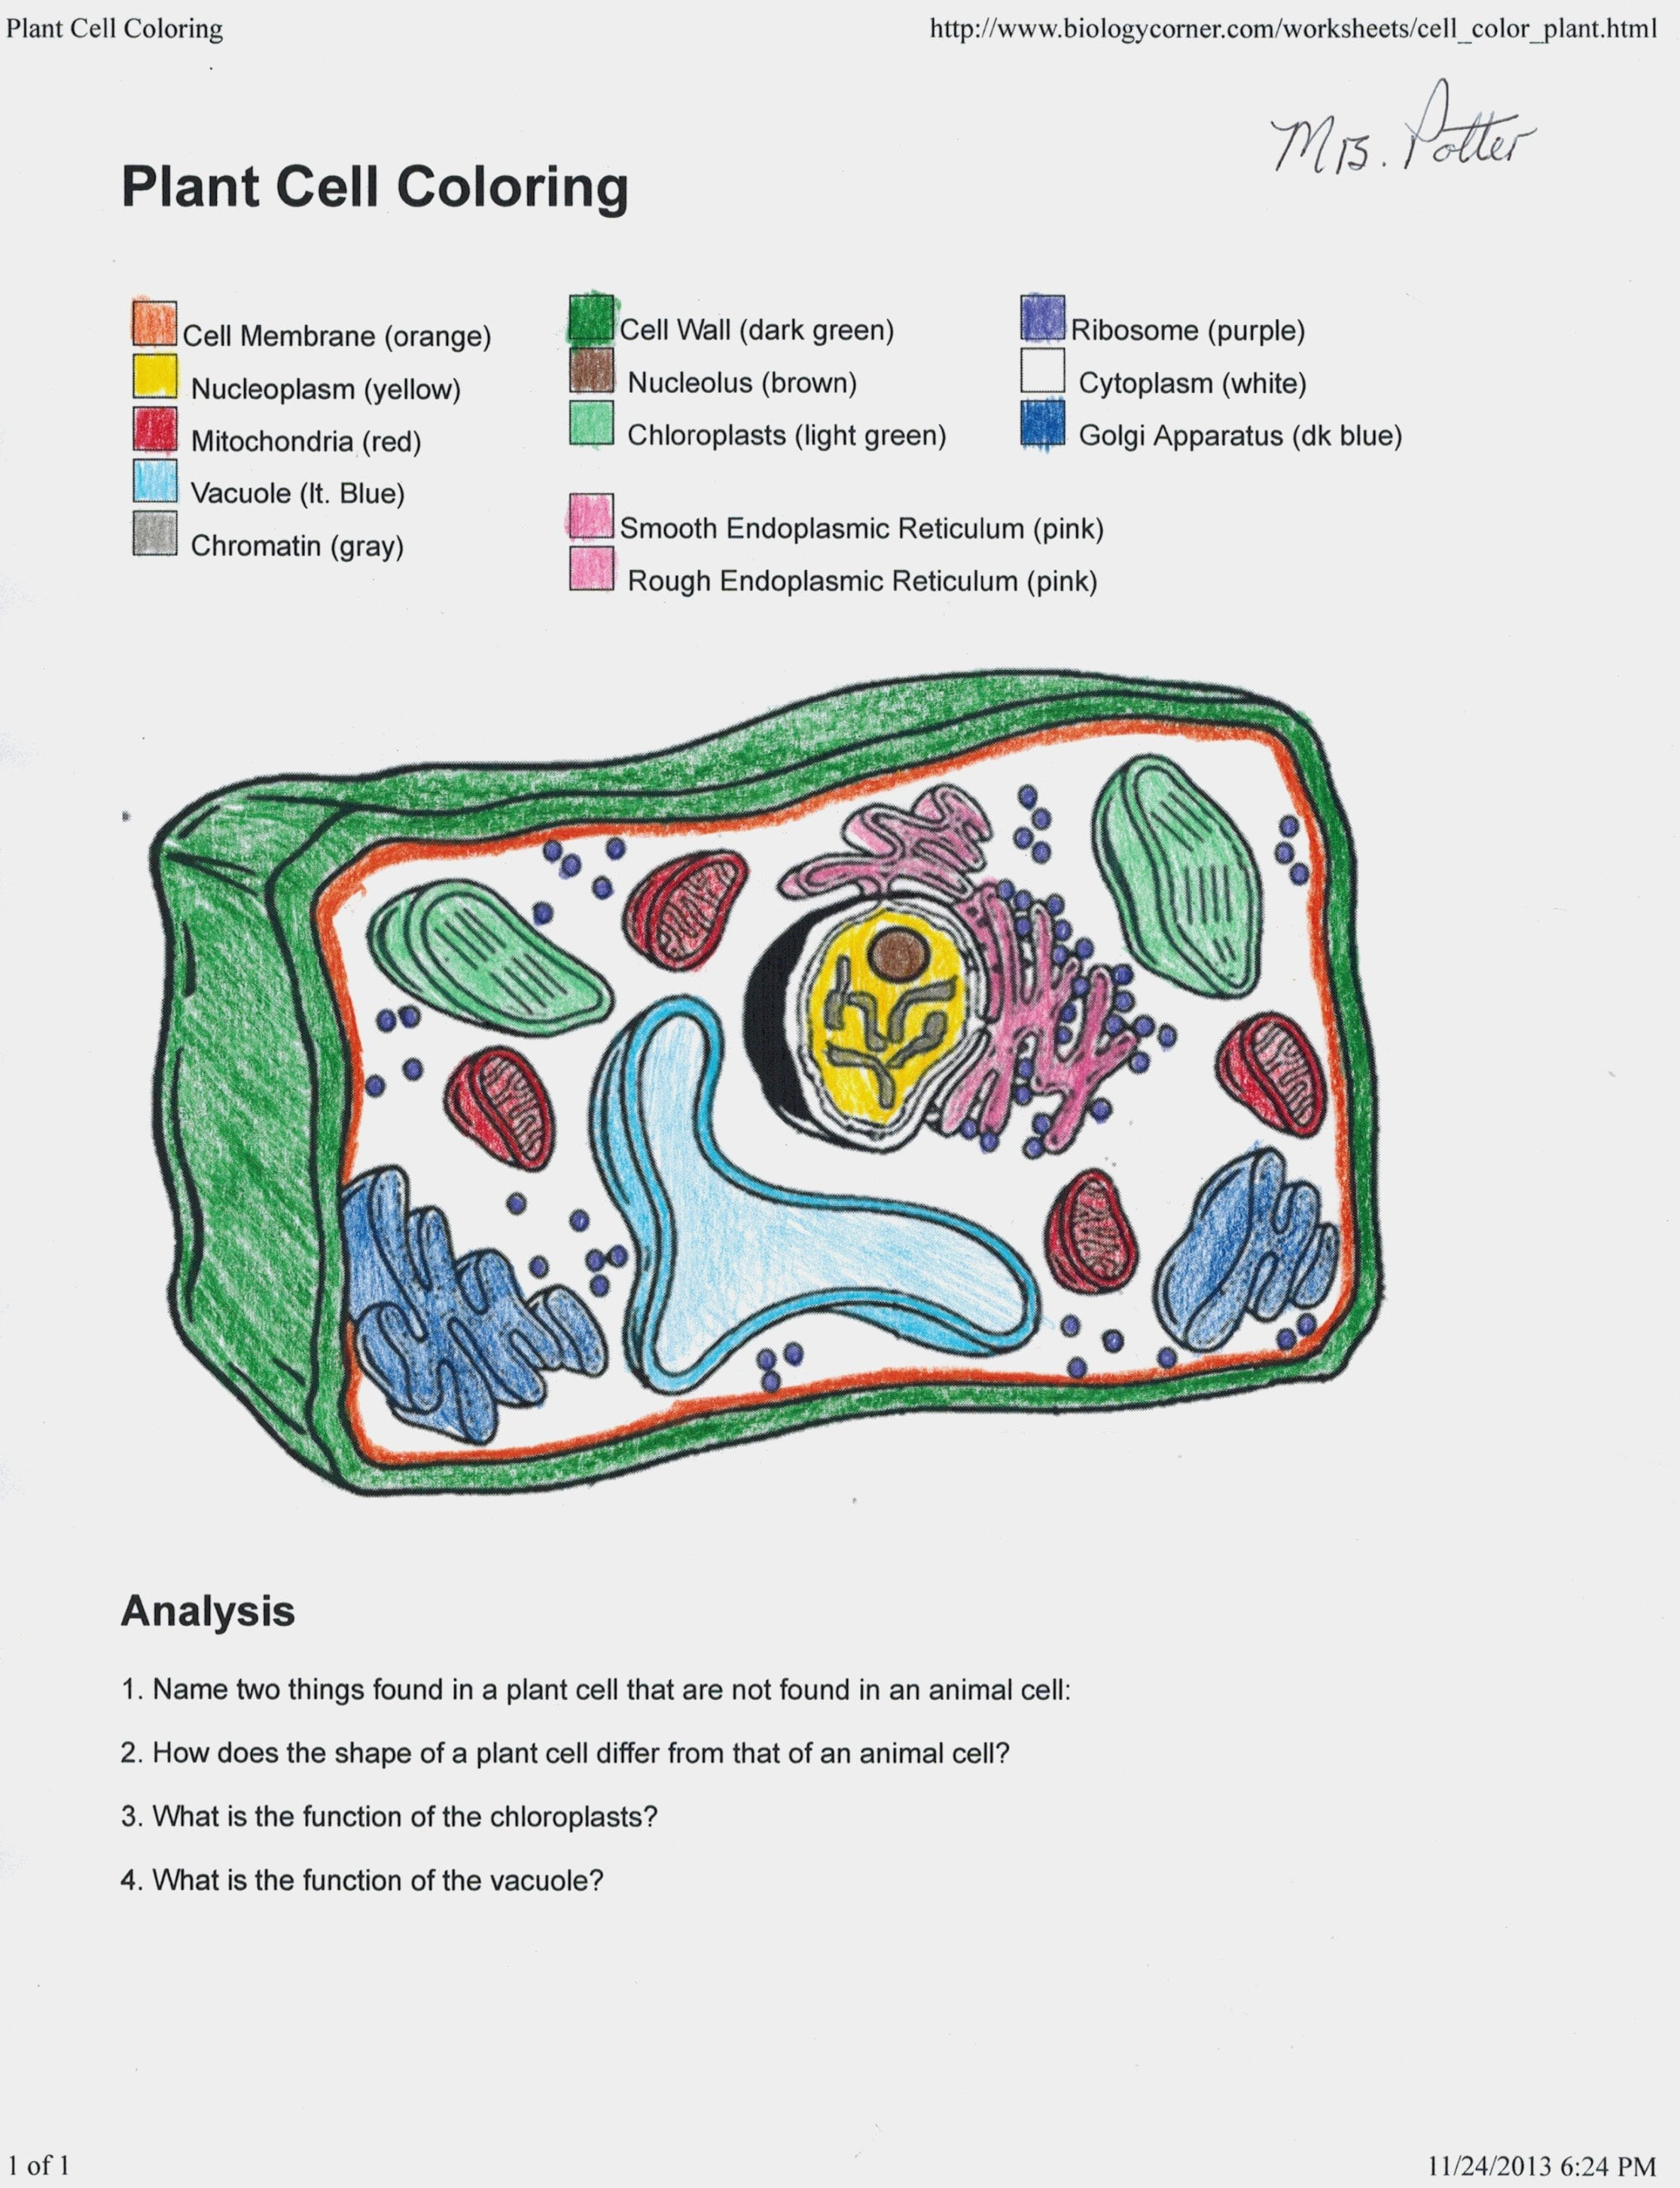 Plant Cell Coloring Key